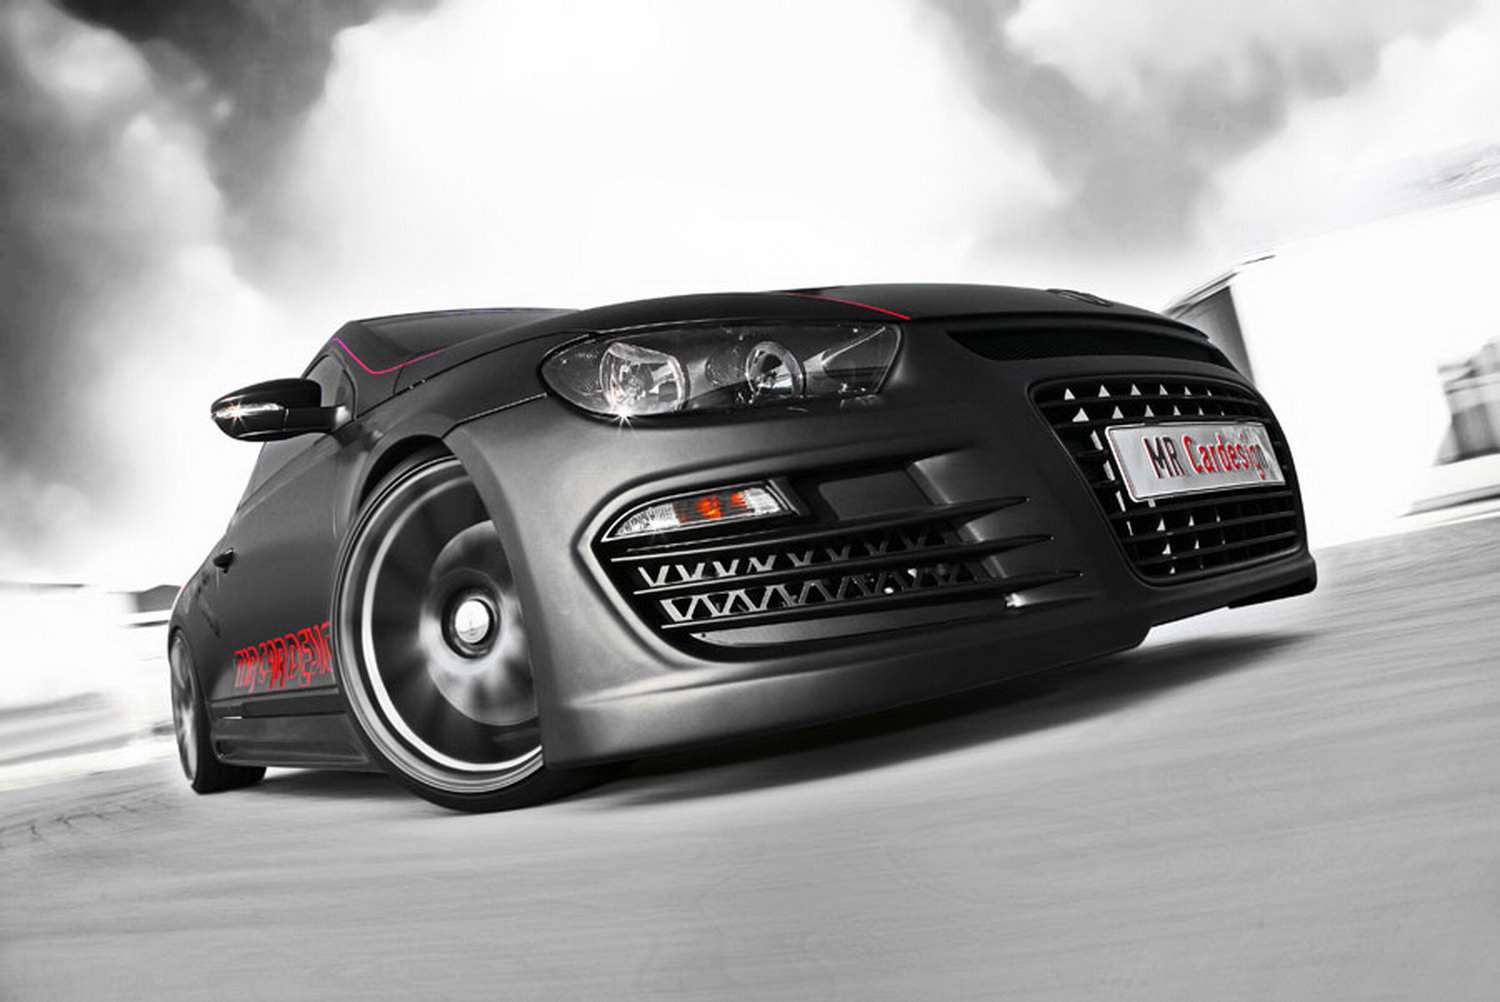 VW Scirocco MR Car Black Rocco 2009